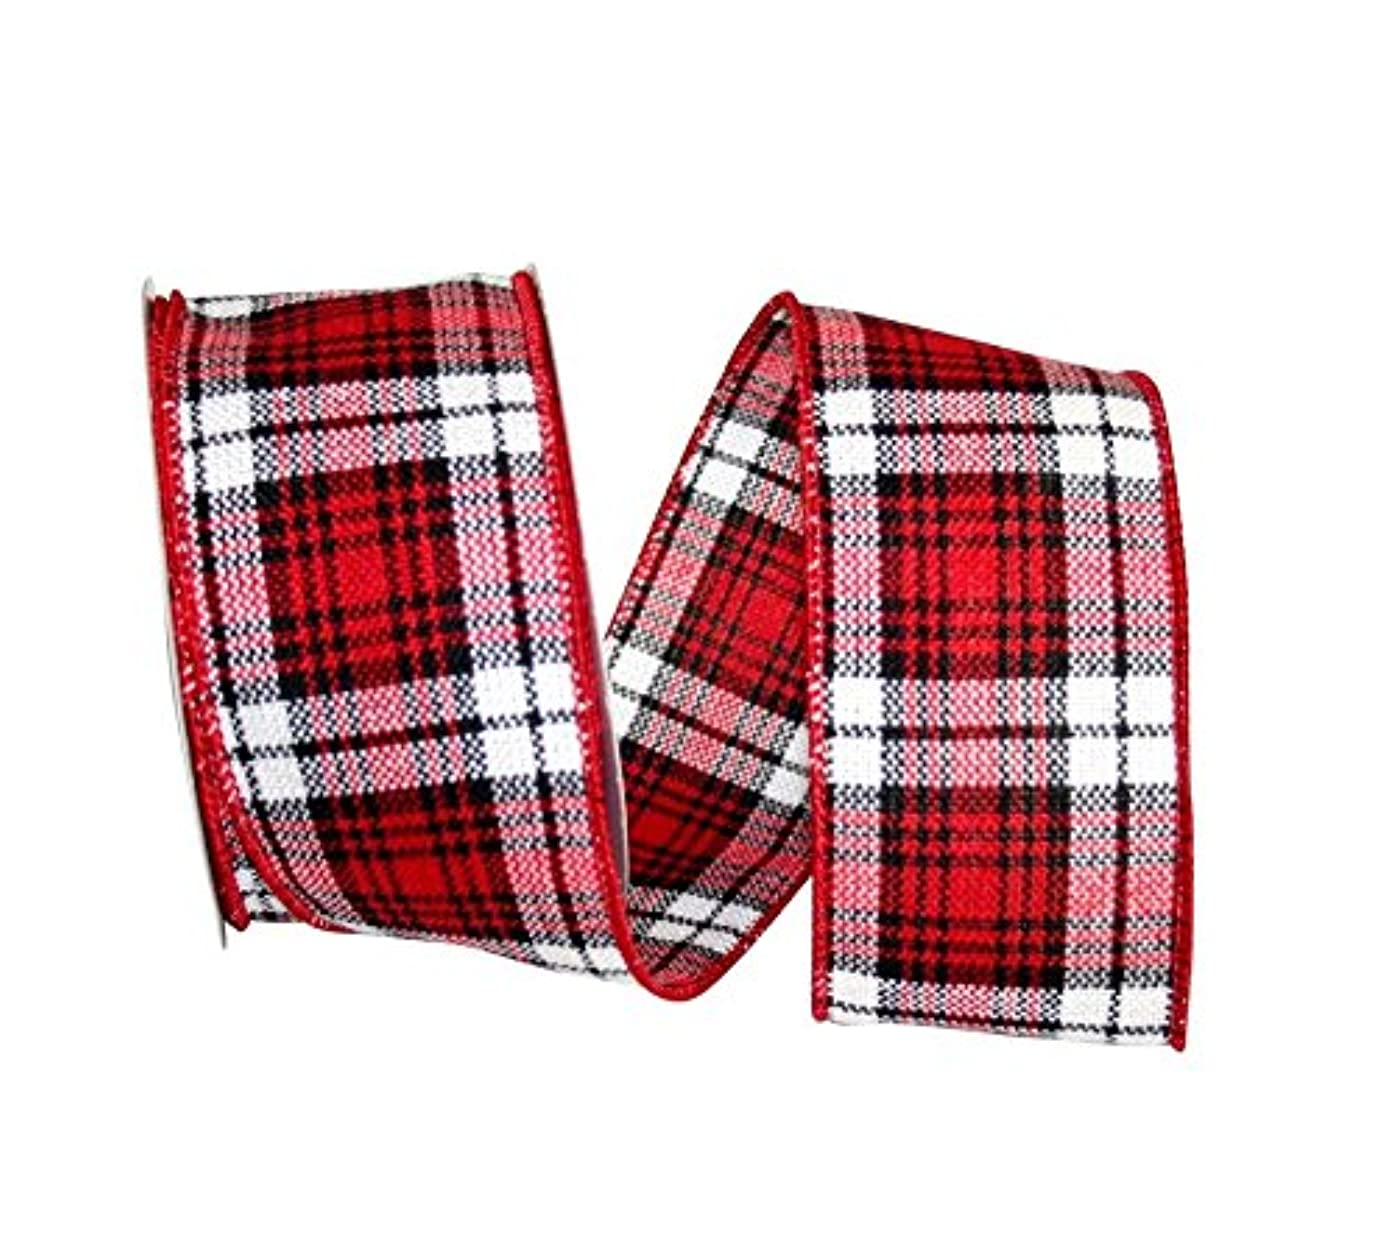 Reliant Ribbon 92988W-937-40F Cabin Natural Woolen Plaid Wired Edge Ribbon, 2-1/2 Inch X 10 Yards, Red/Black